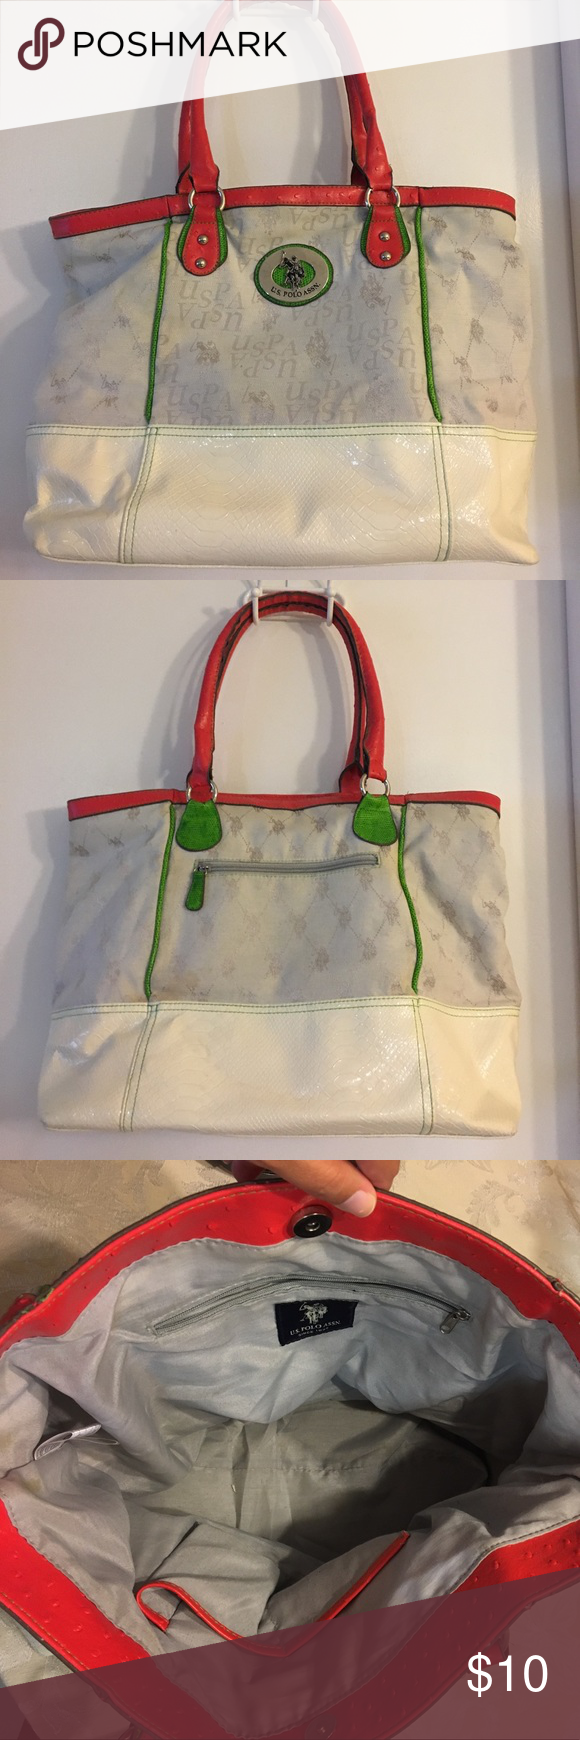 U S Polo Assn Tote Bag Spacious And Light Weight Travel Bag Cream Color With Red And Green Accents Very Light Weight And Can Fi Bags Totes Tote Tote Bag